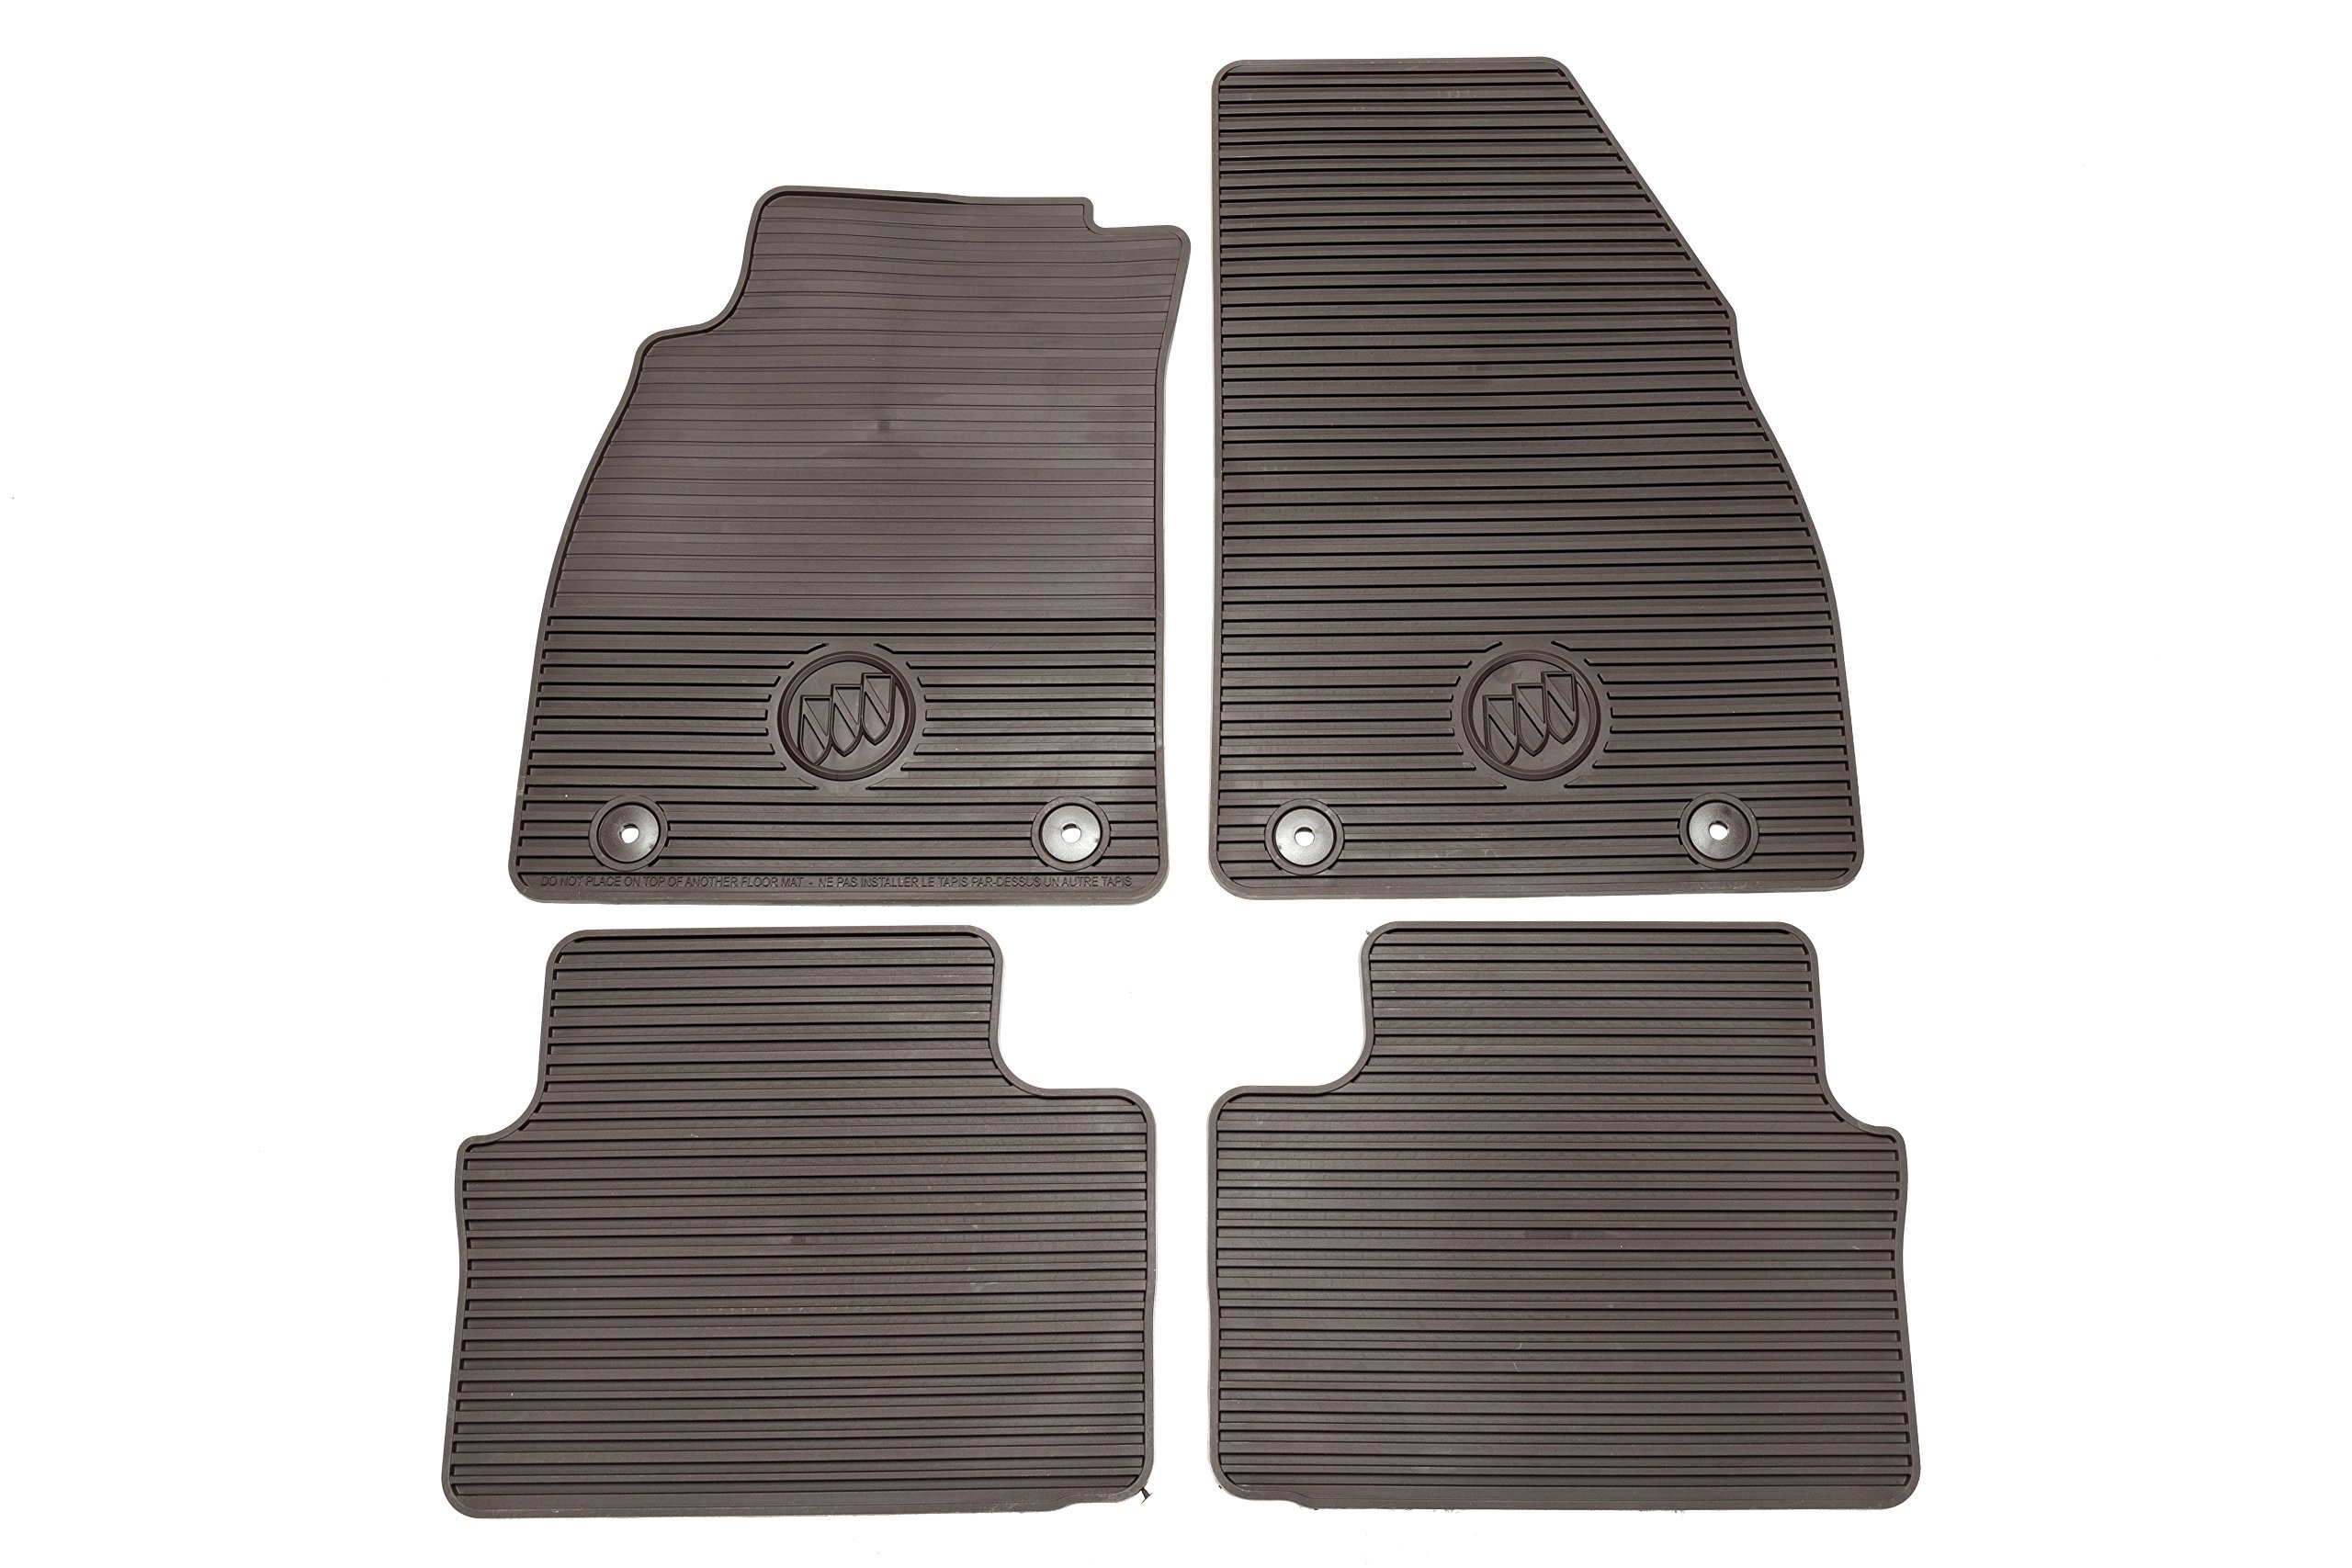 GM Accessories 22986346 Front and Rear All-Weather Floor Mats in Cocoa with Buick Logo by General Motors